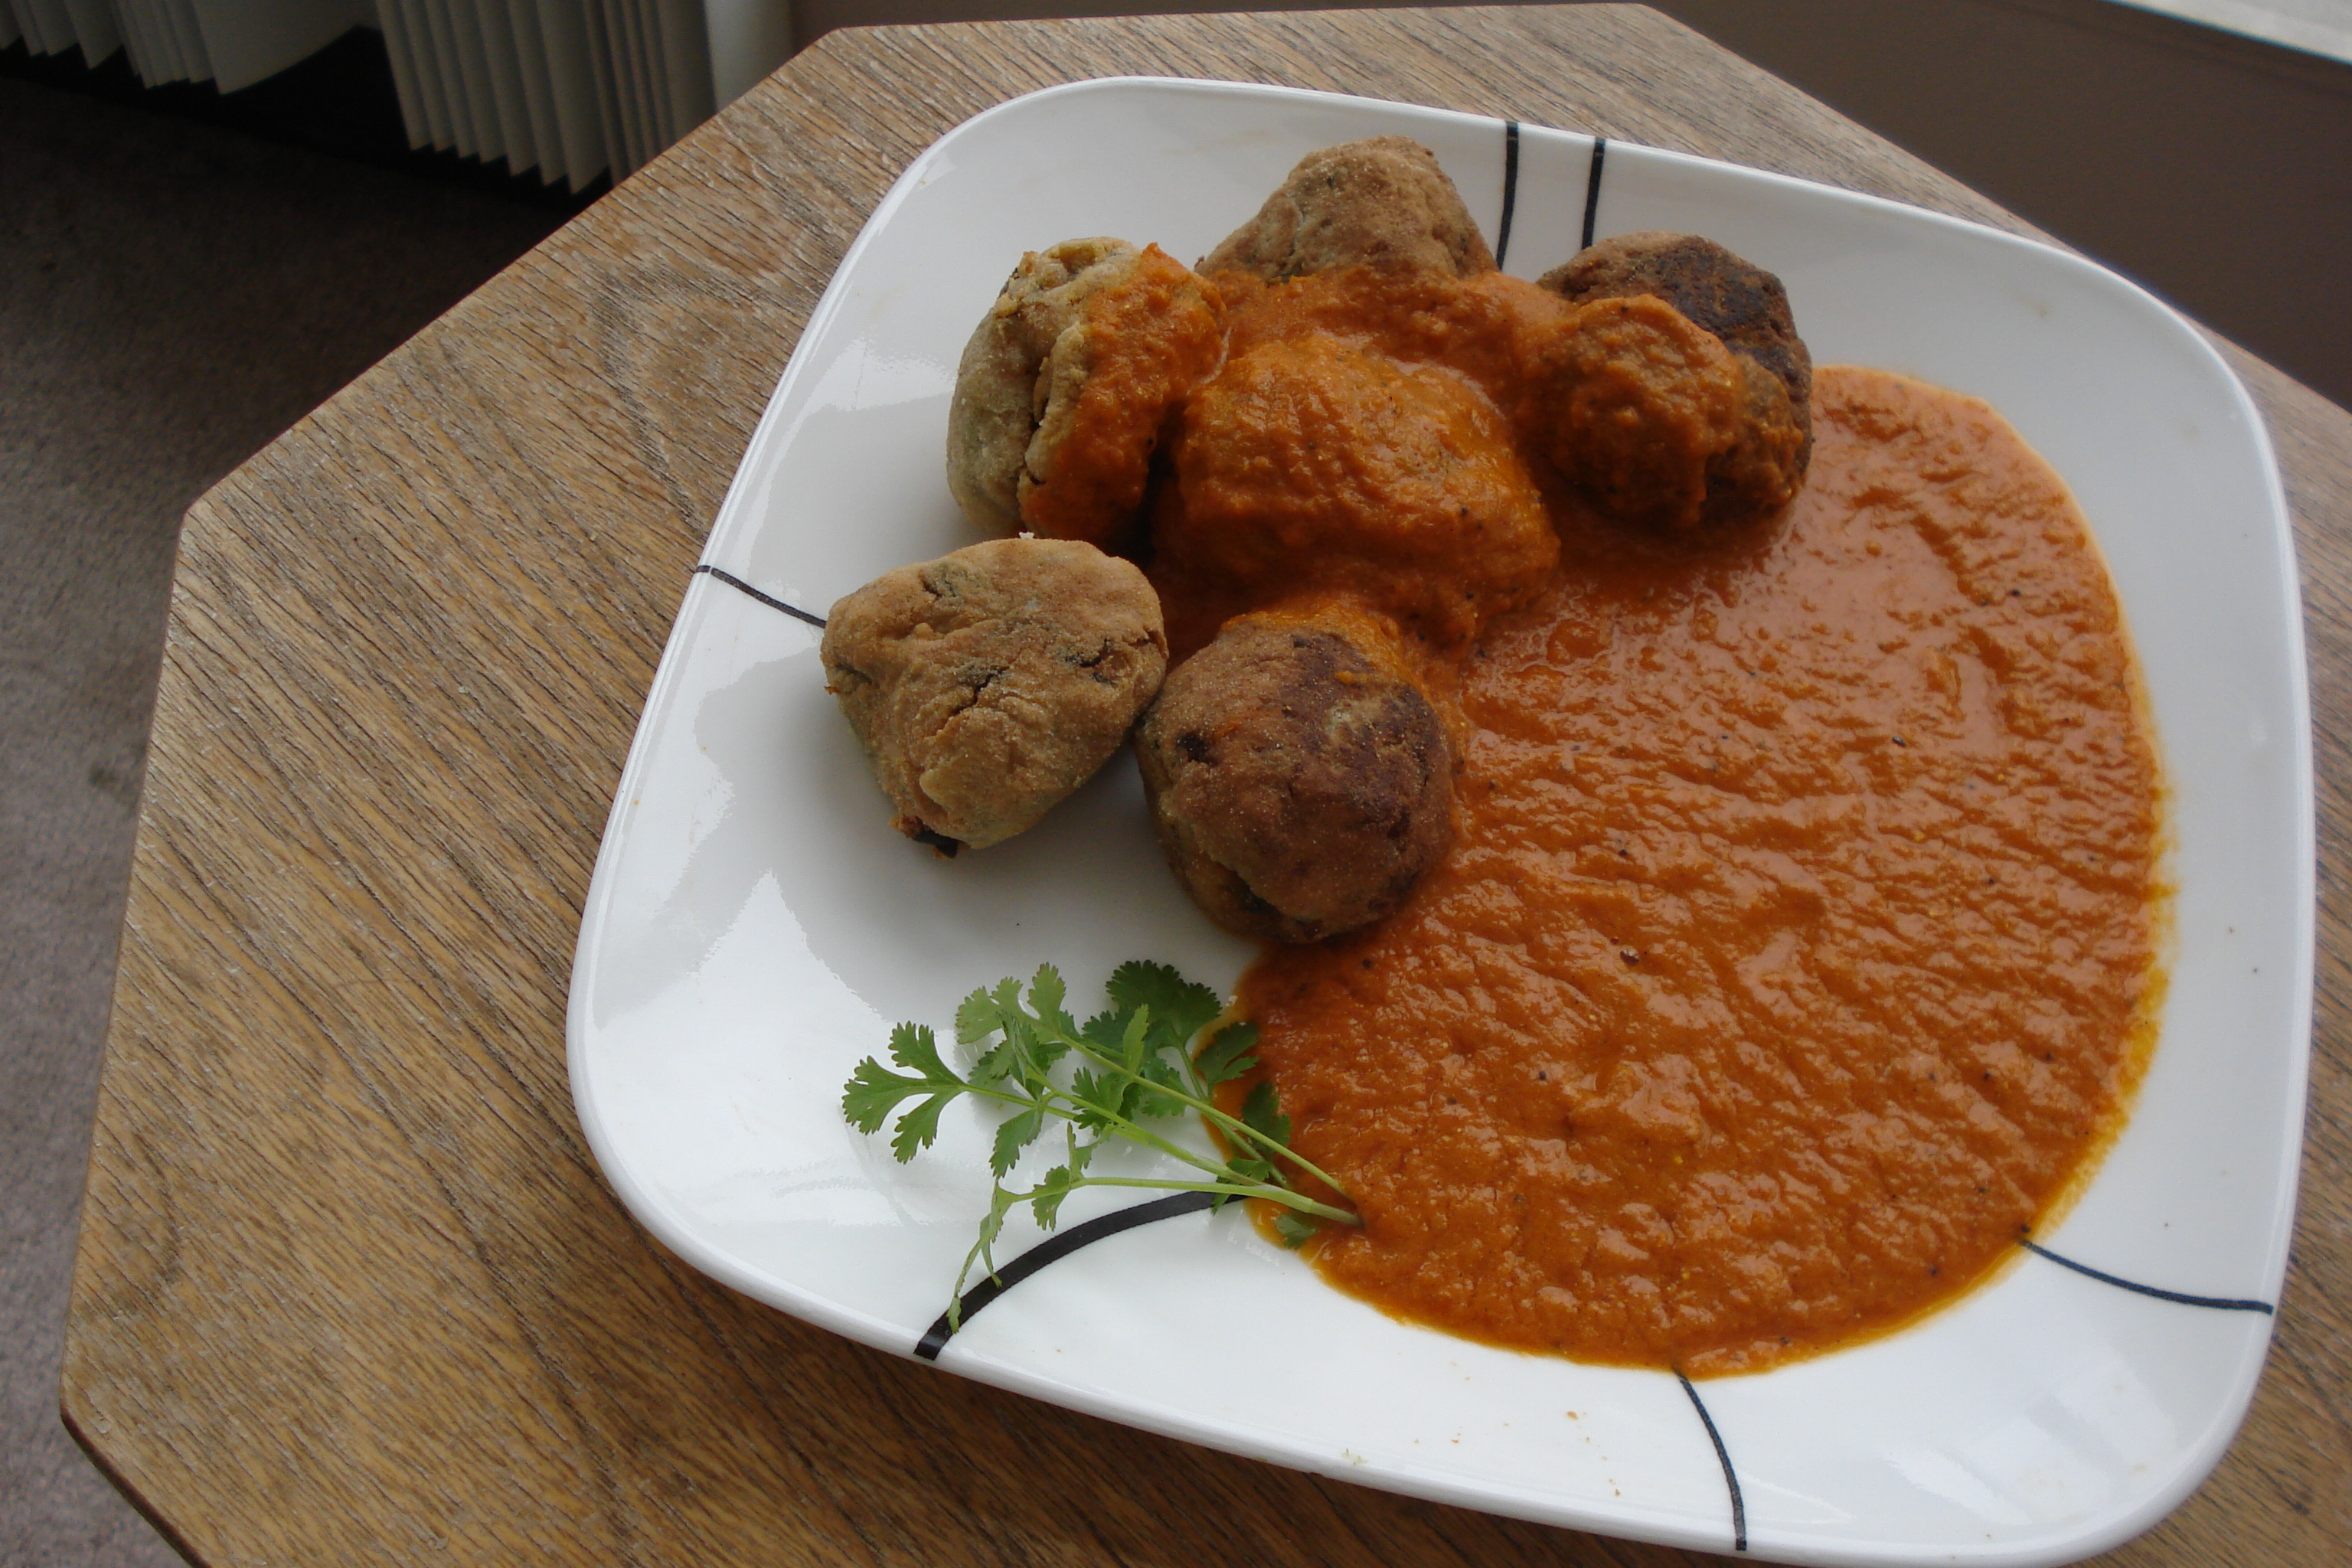 ... add the fried koftas and here are my fried koftas yam koftas are ready